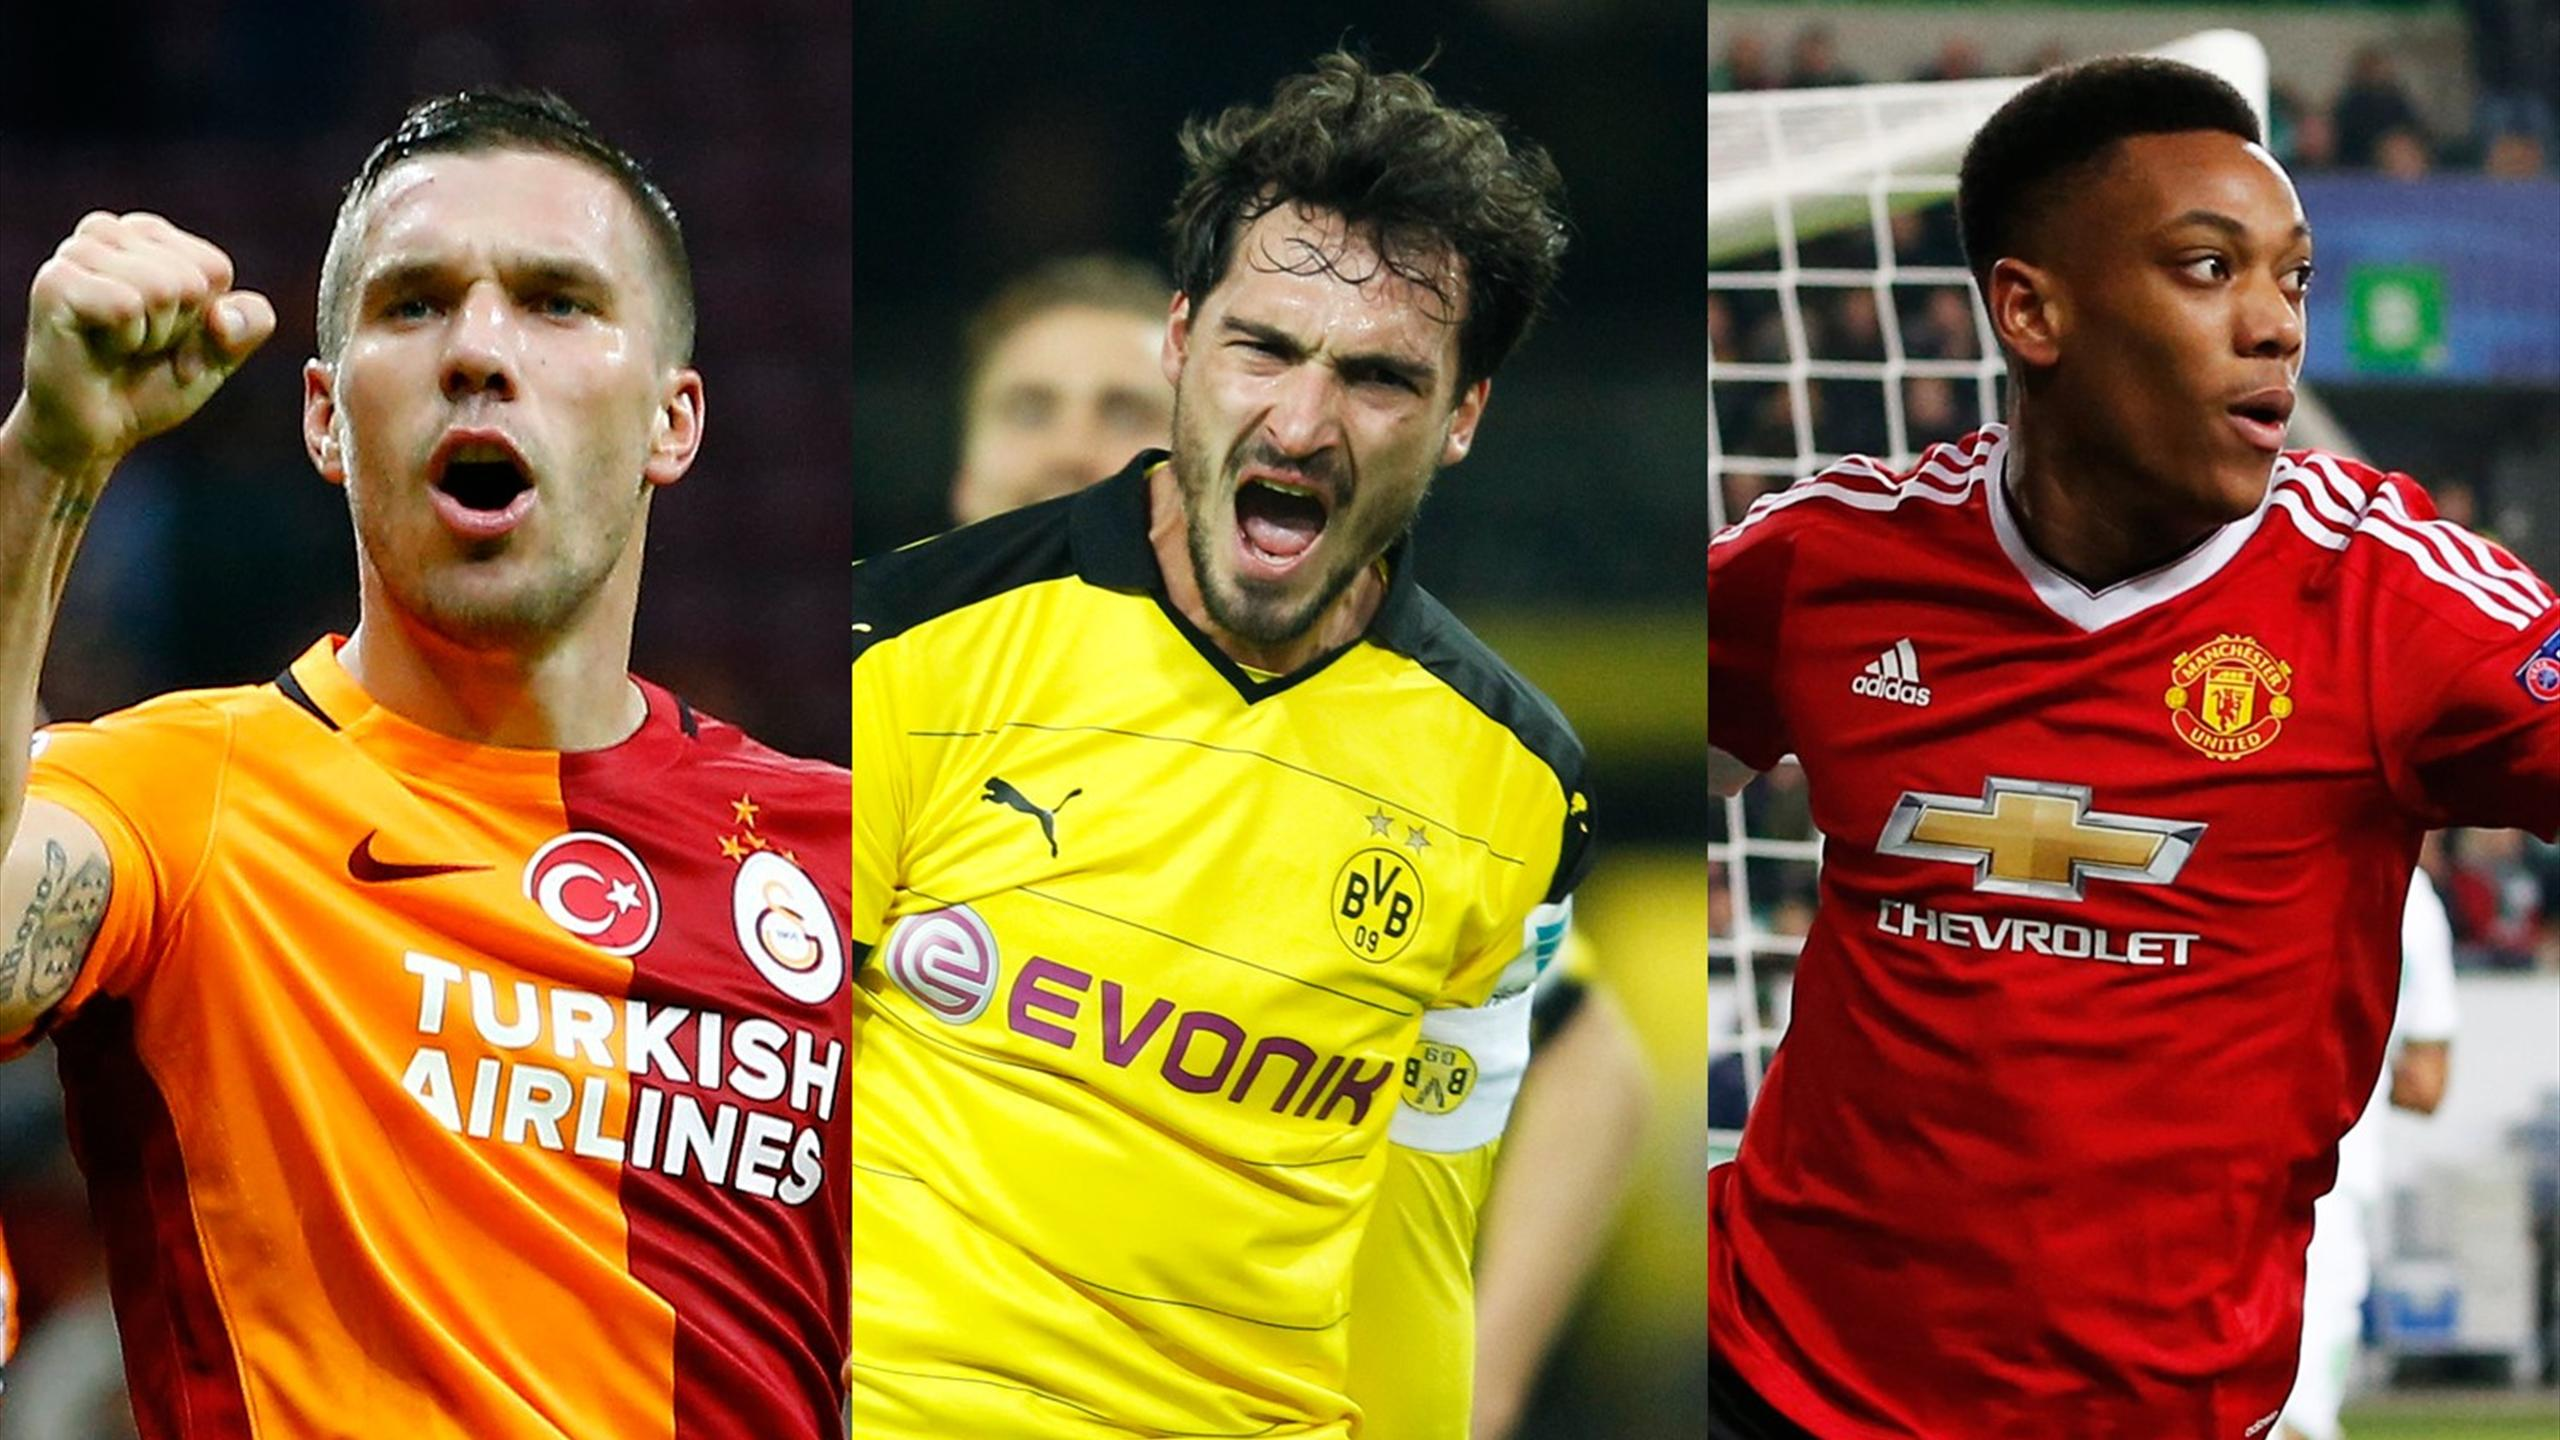 Galatasaray's Lukas Podolski, Borussia Dortmund's Mats Hummels and Manchester United's Anthony Martial